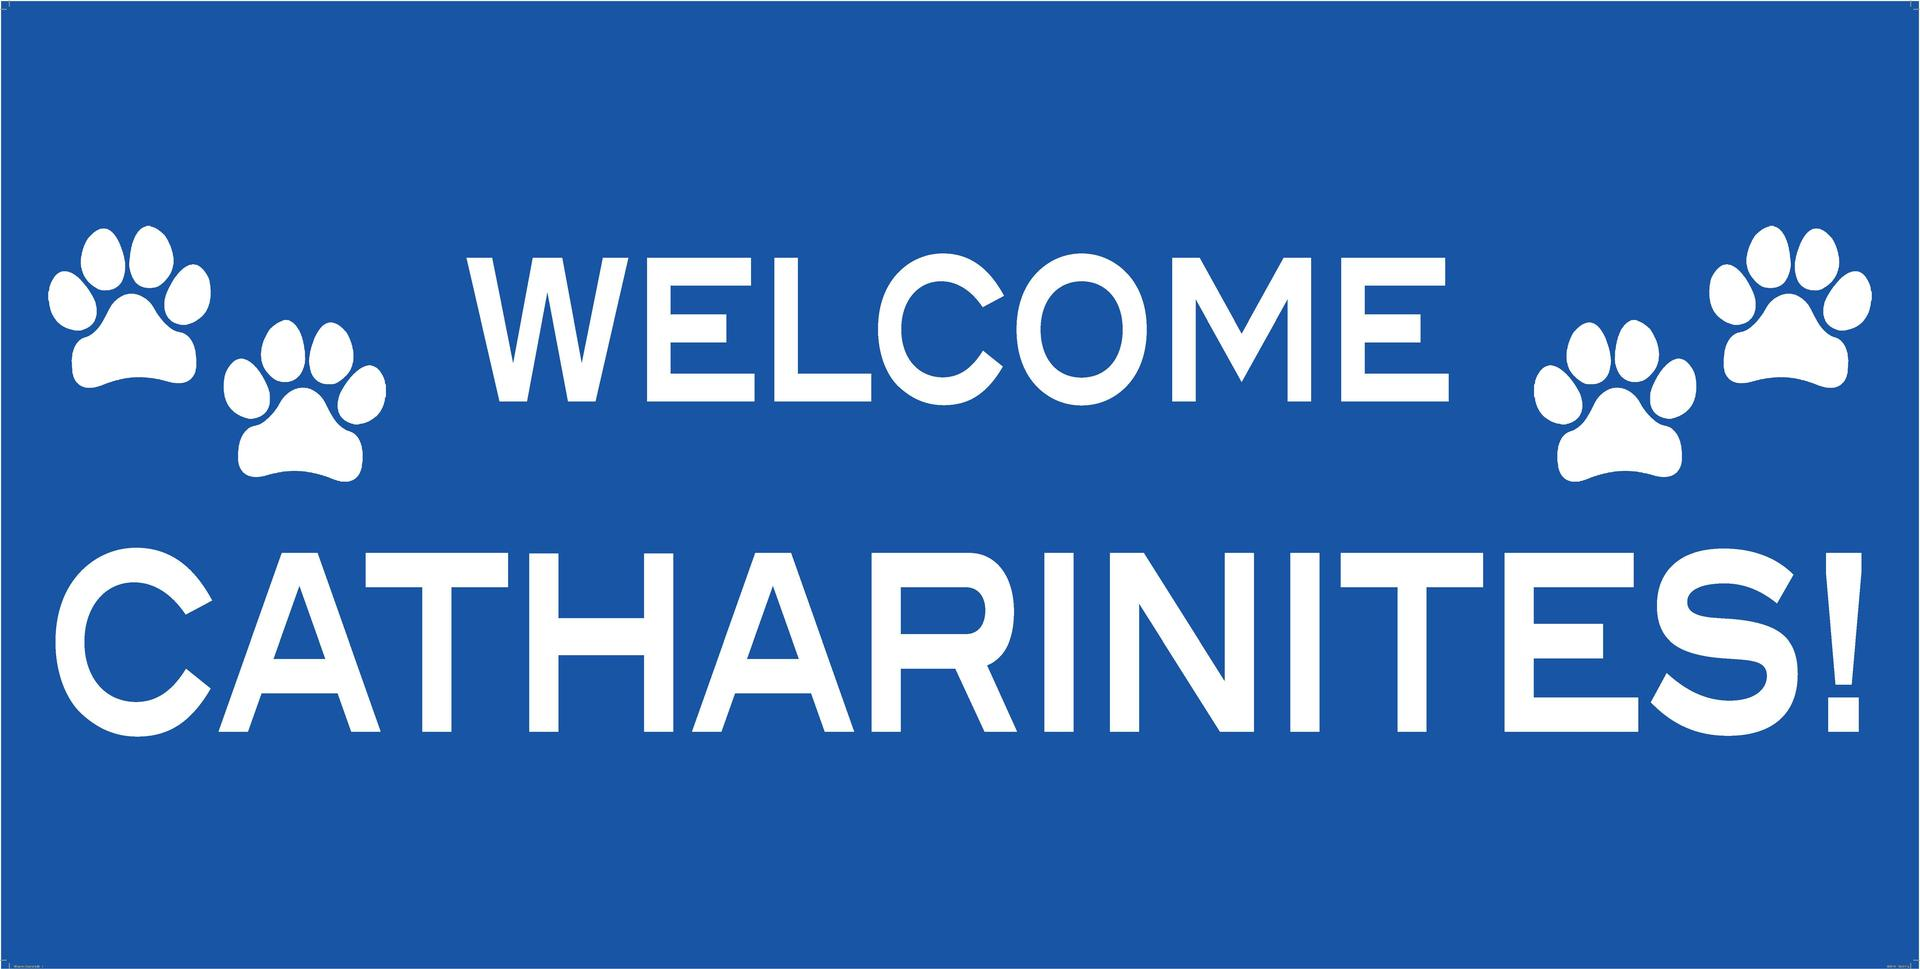 Welcome Catharinites